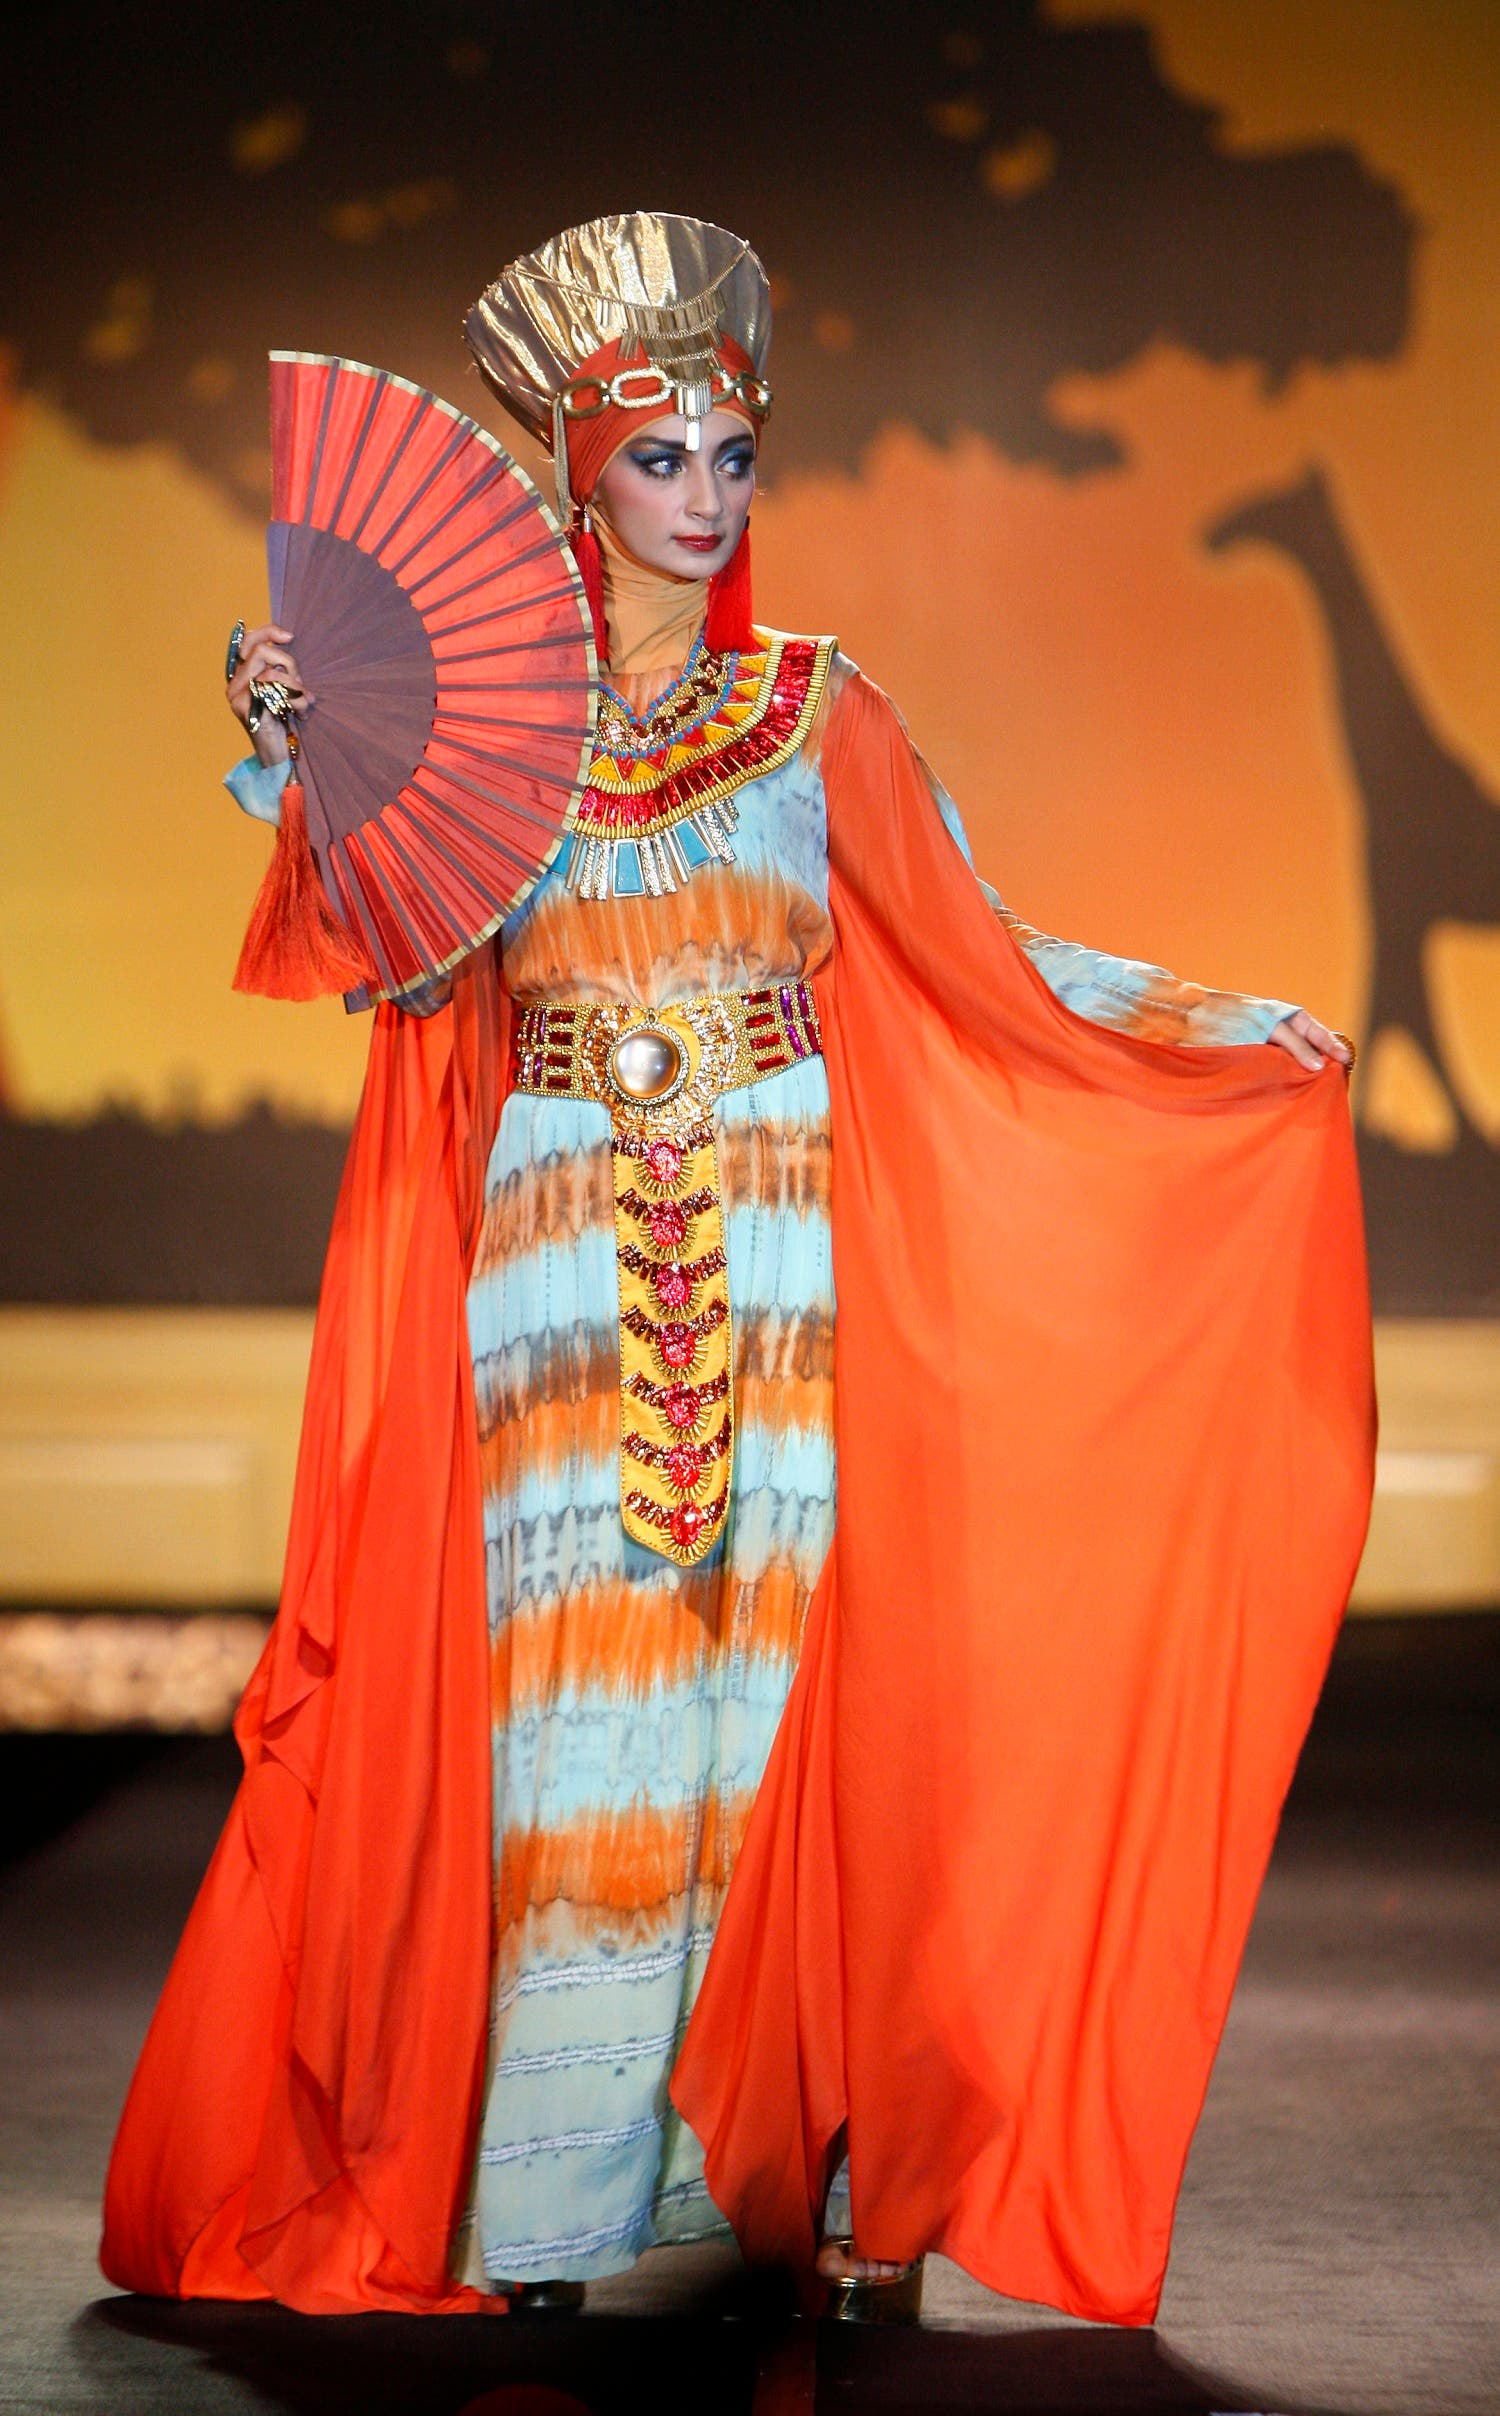 Models show creations by Dian Pelangi in silhouette during the Indonesia Fashion Week 2014 in Jakarta, Indonesia, Feb 21, 2014. (AP)